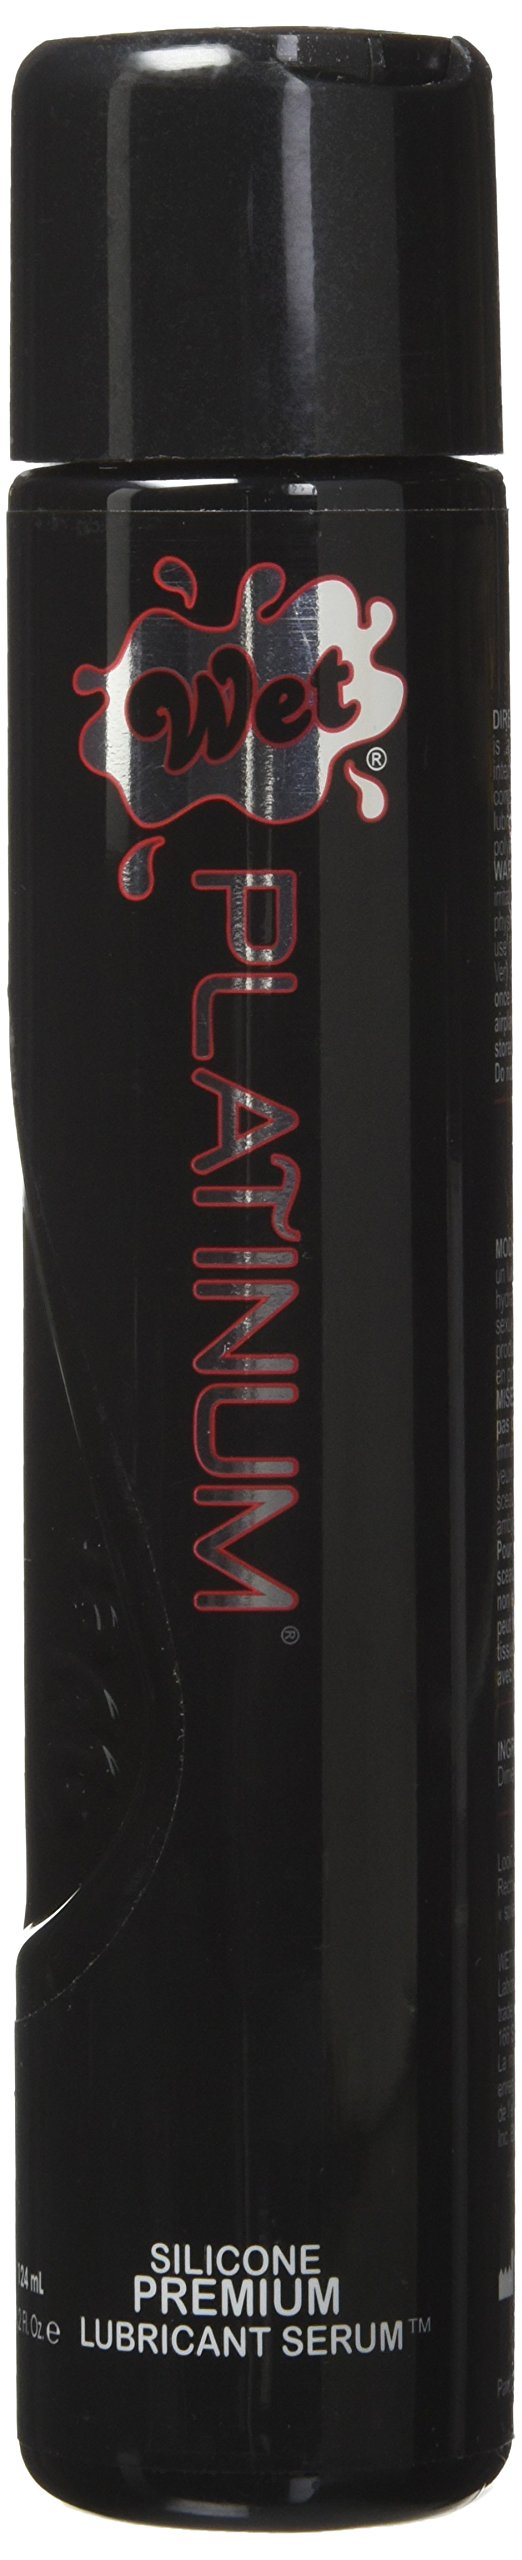 Wet Platinum Silicone Based Lubricant, 4.2 Ounce